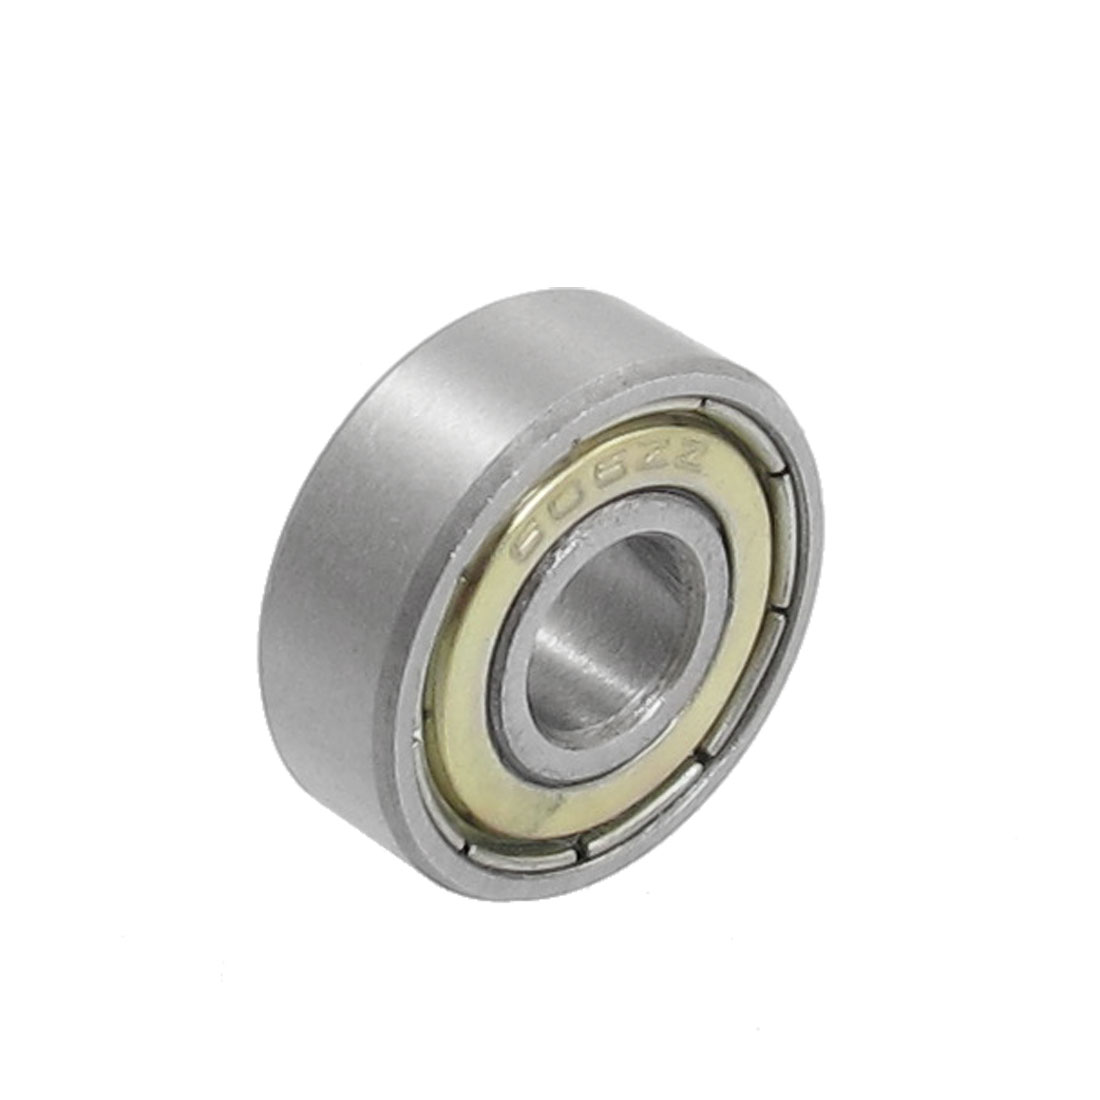 6mm x 17mm x 6mm 606 Shielded Miniature Deep Groove Radial Ball Bearing